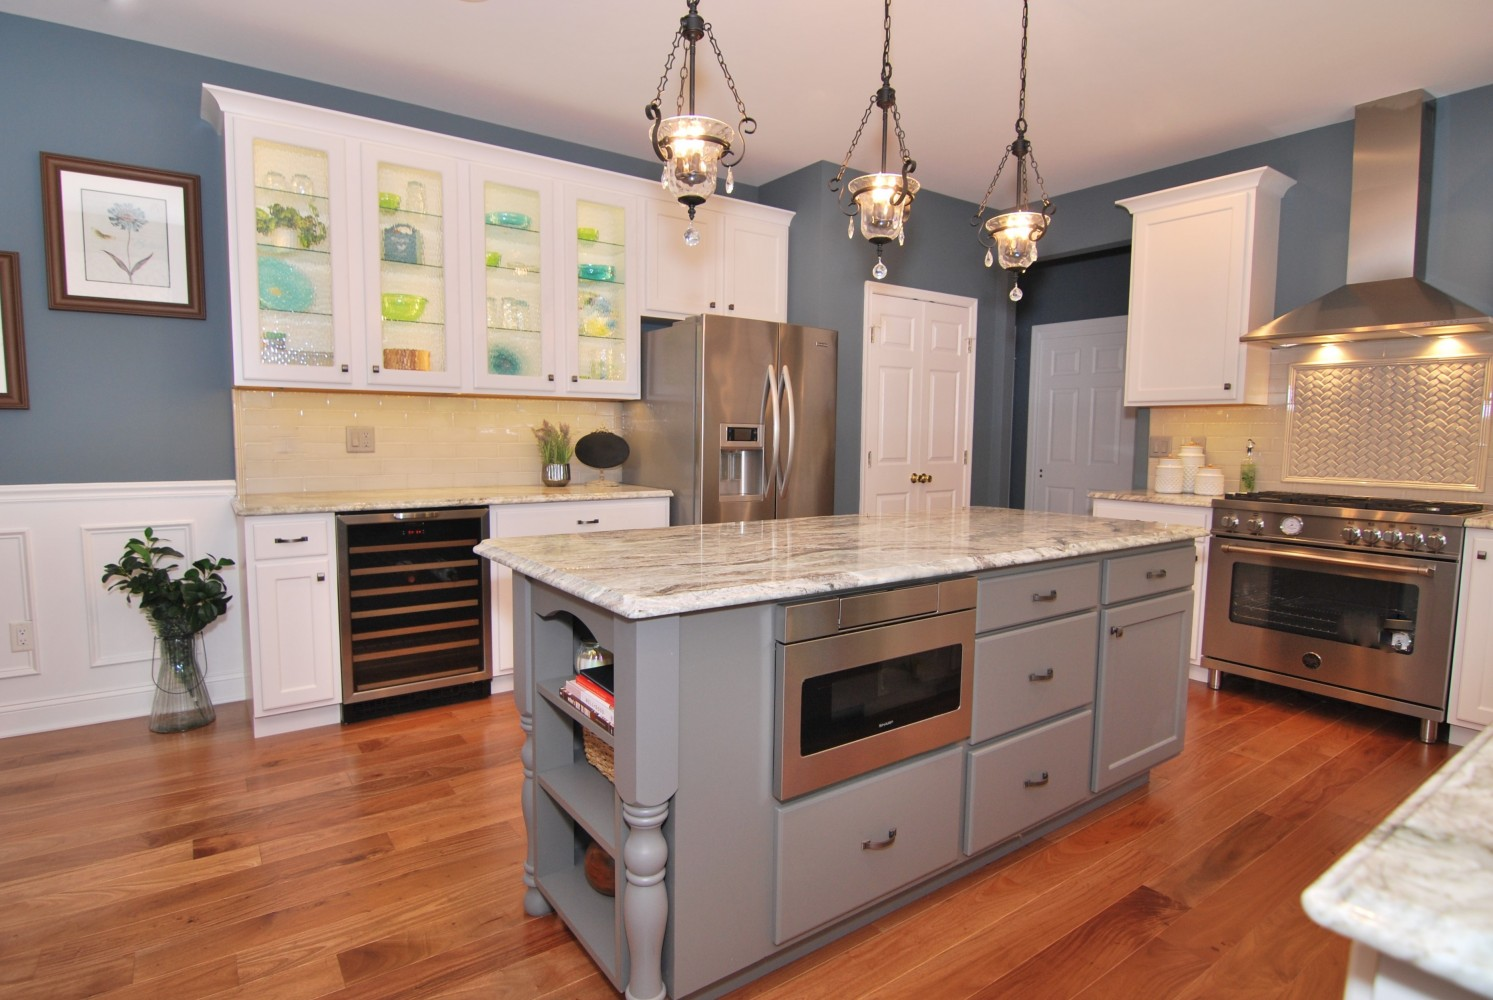 Refaced White And Gray Kitchen Monroe Nj Distinctive Interior Designs